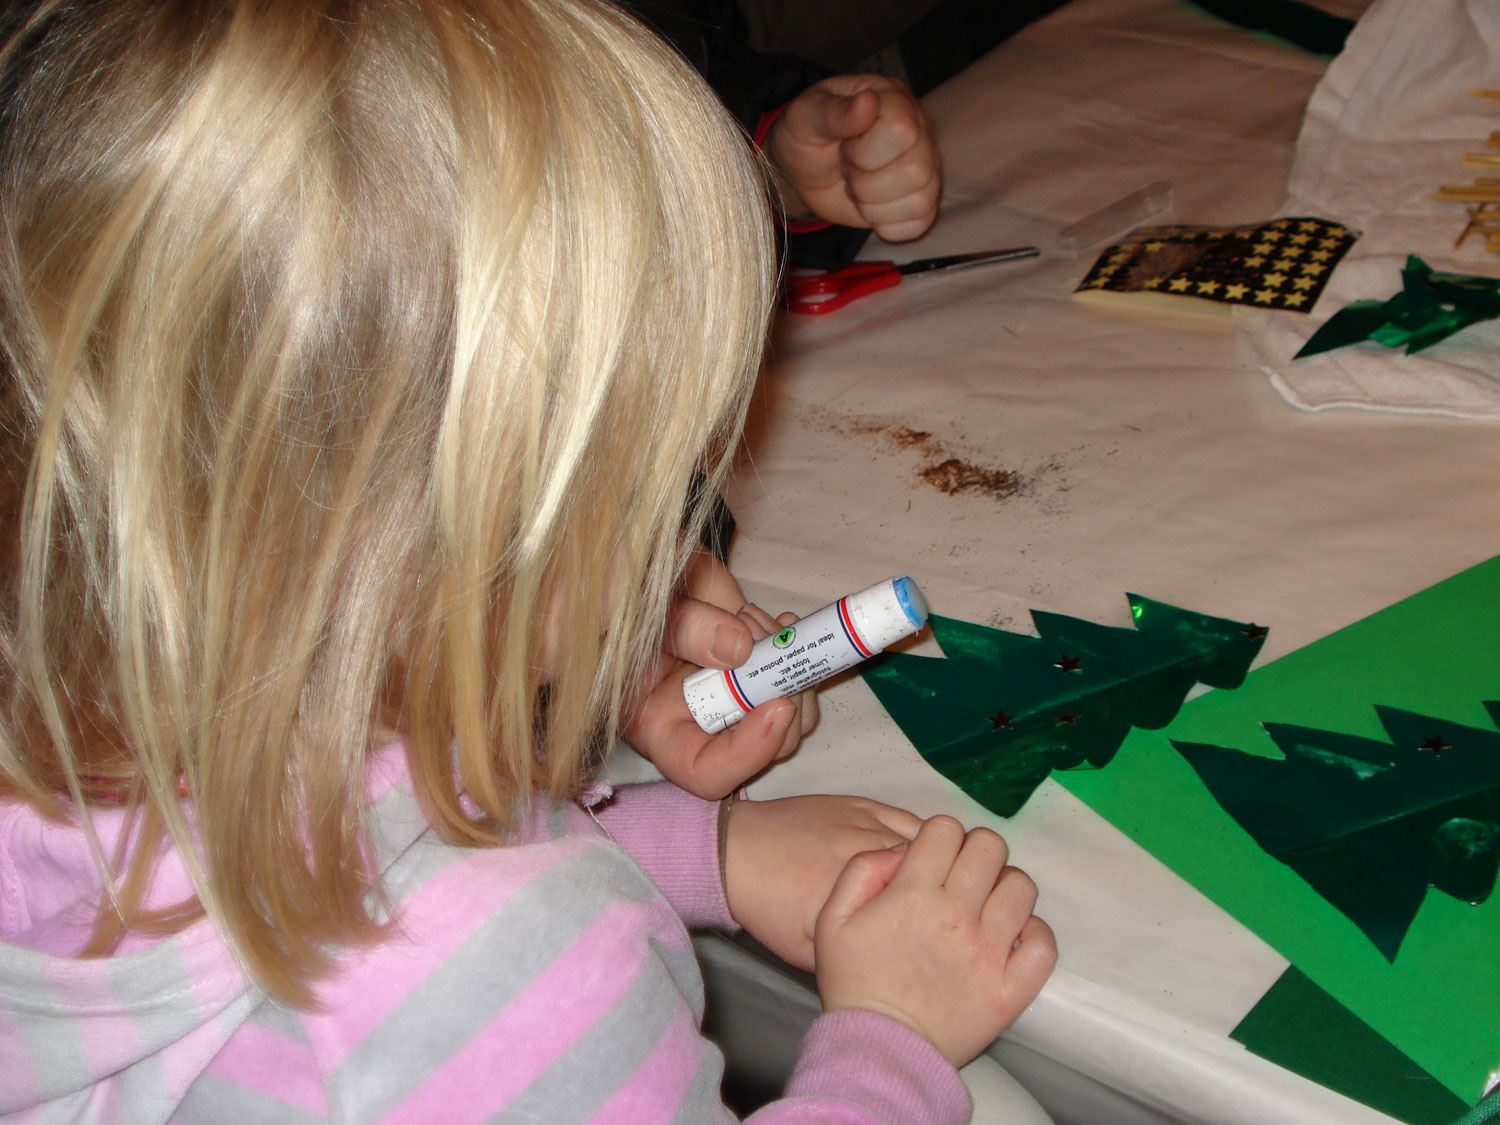 The children's Christmas preparations at Blekinge Museum